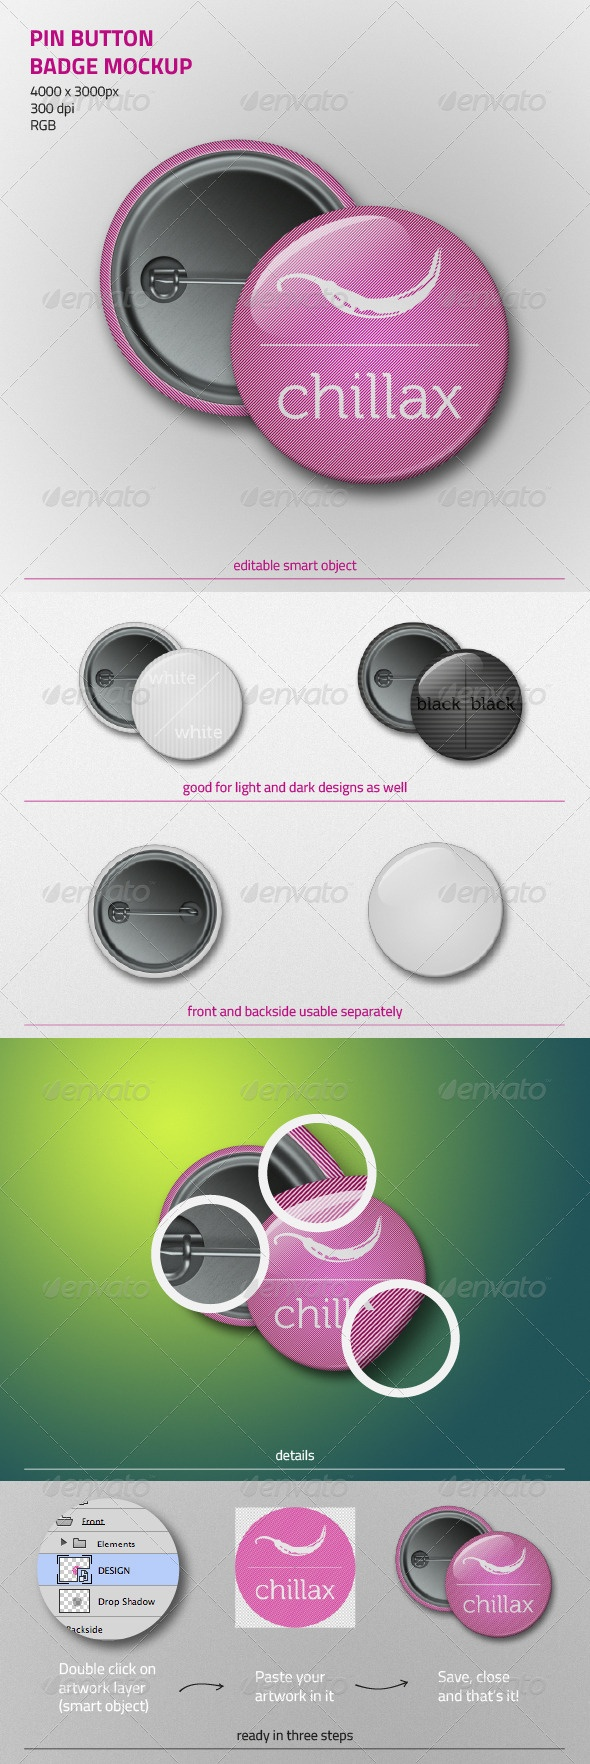 Pin Button Badge Mockup -  zarins on graphicriver, $4